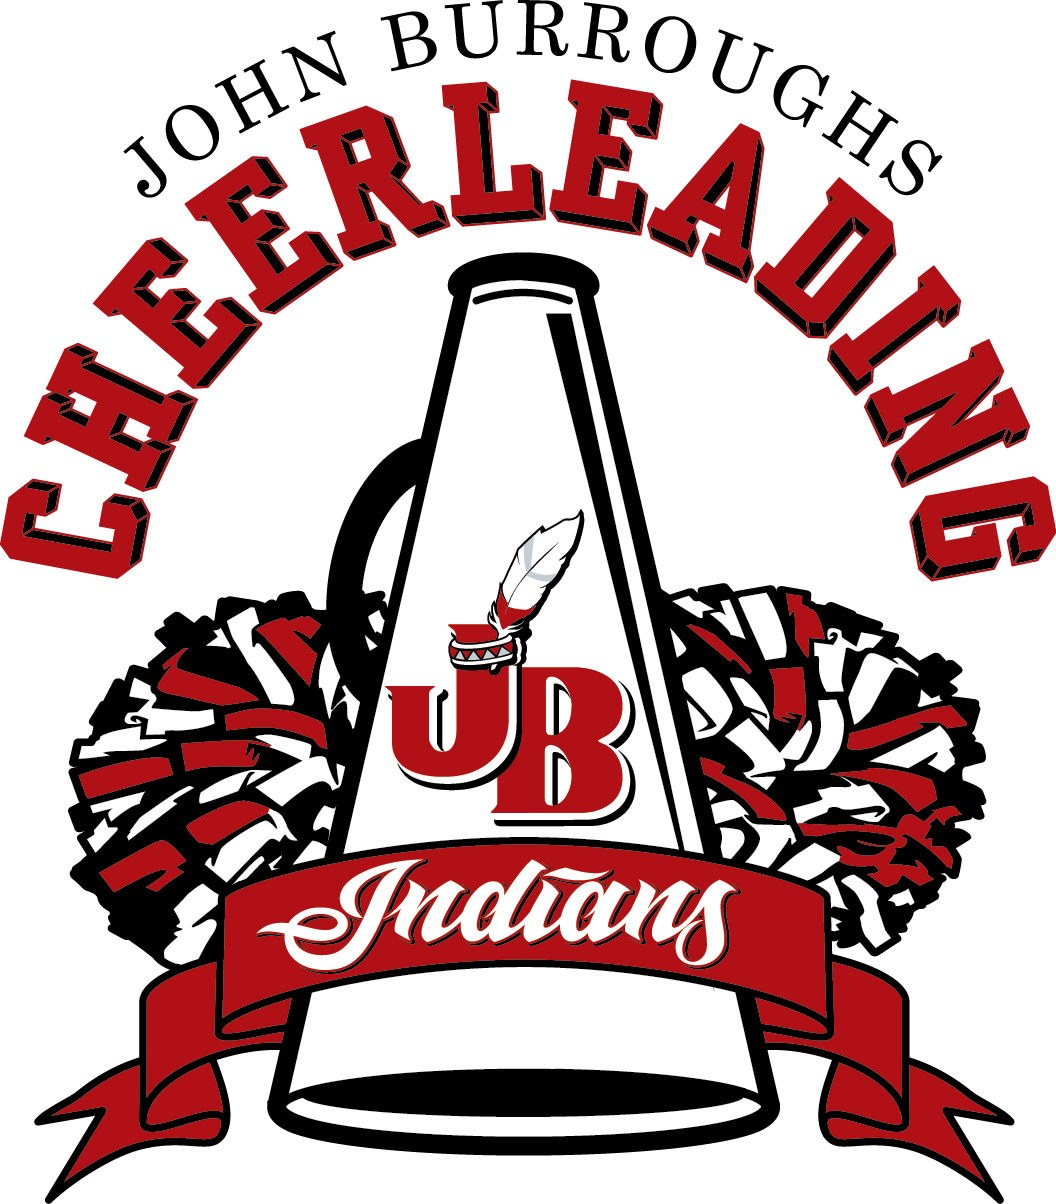 Competition clipart cheered. Jbhs cheerleaders